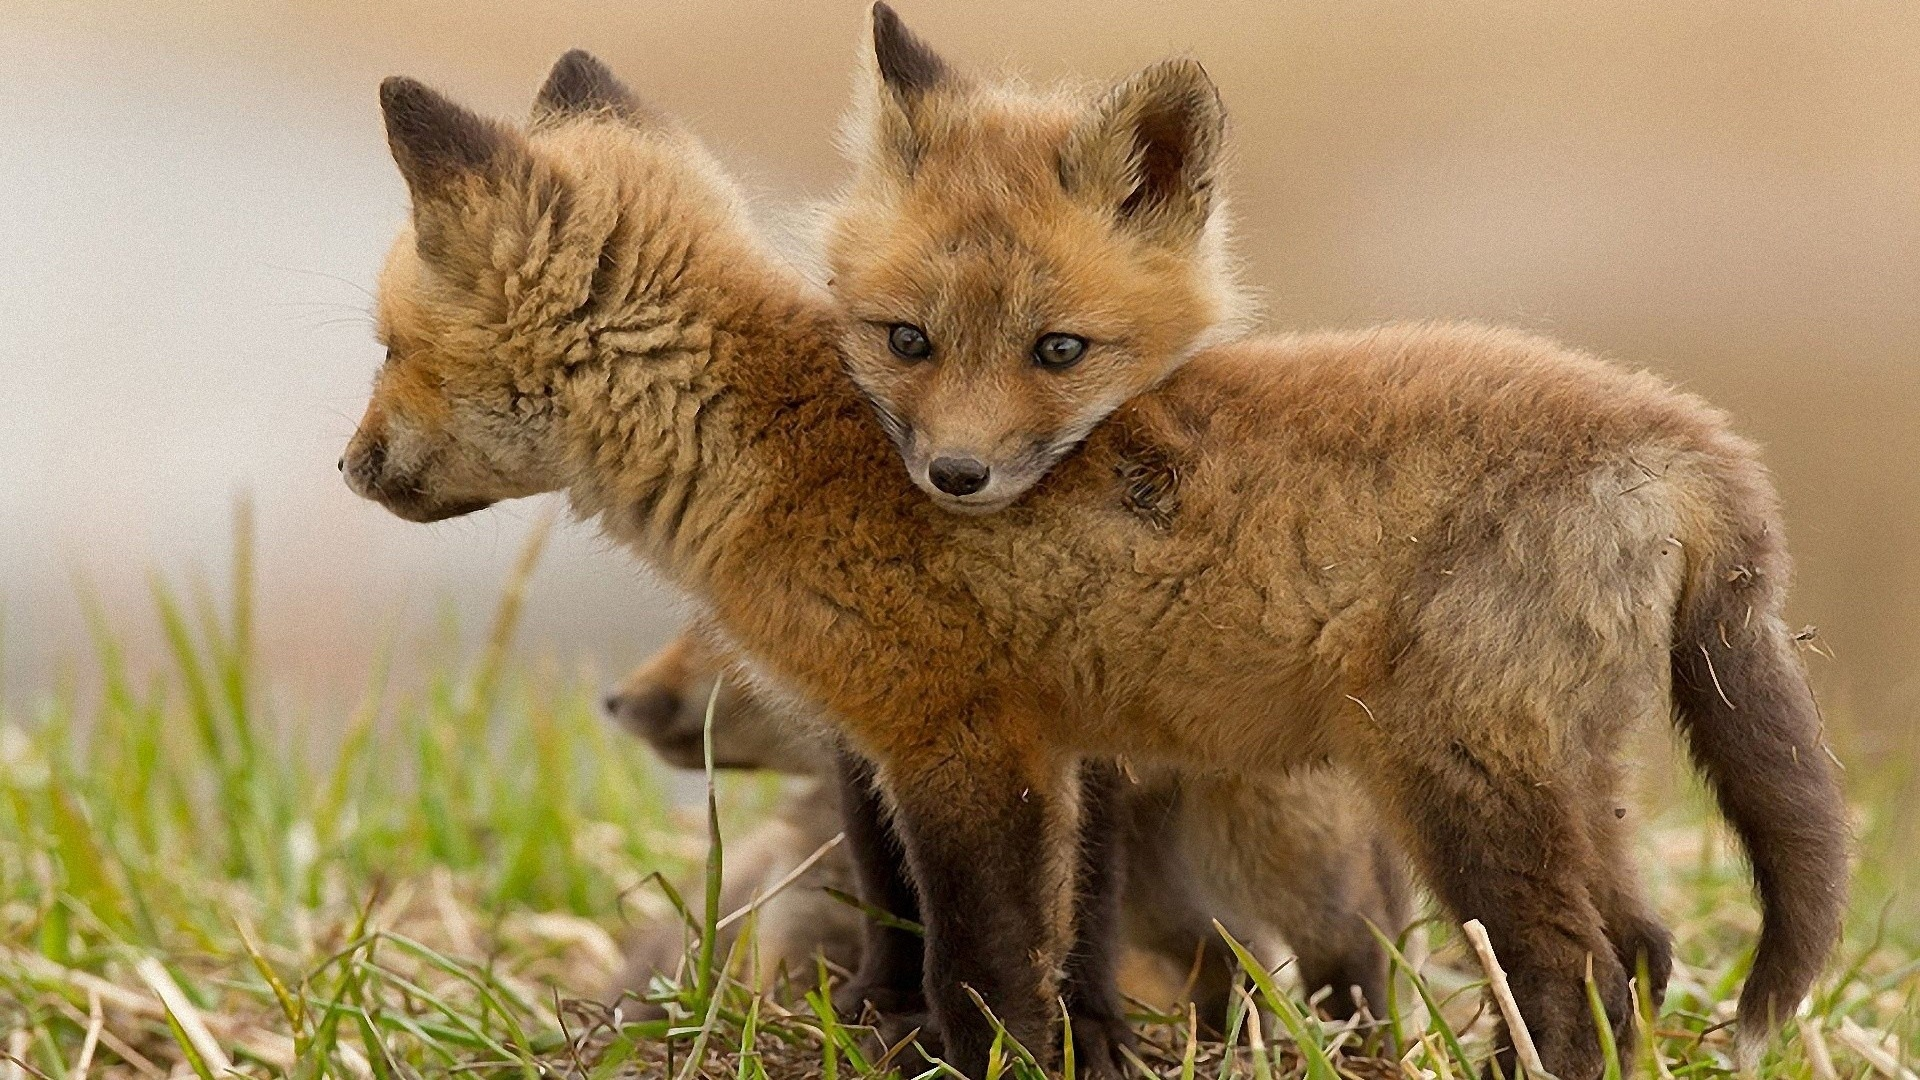 1920x1080 Fox Cubs Desktop PC And Mac Wallpaper